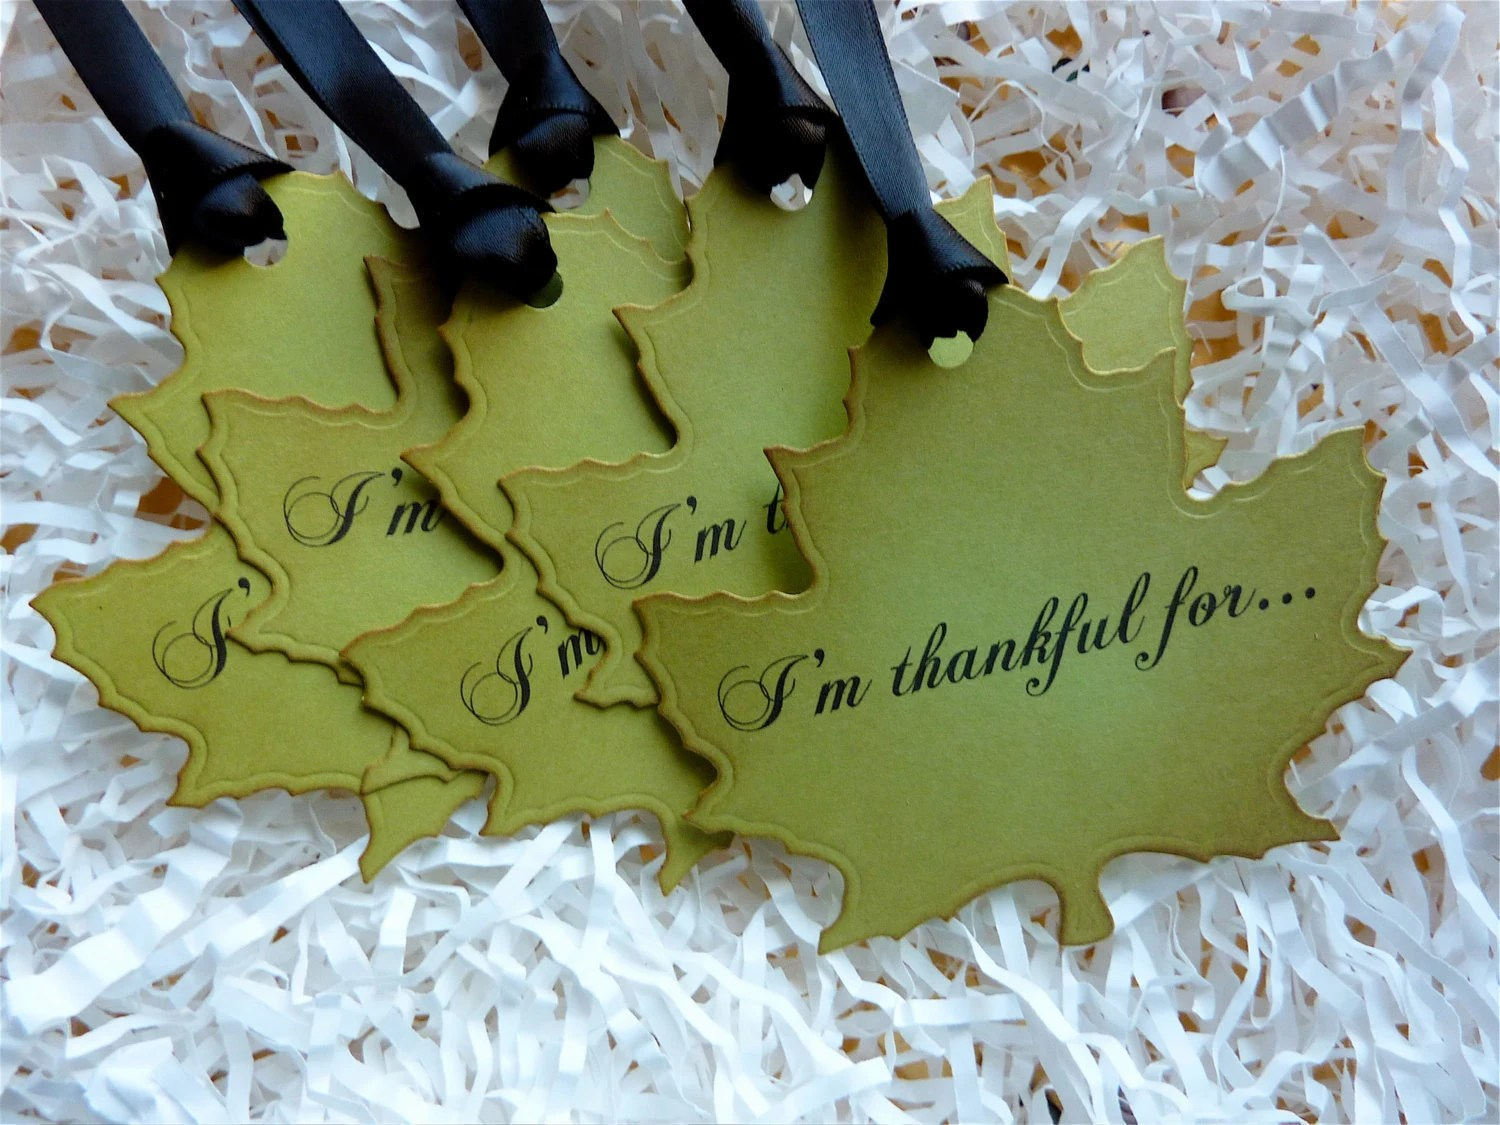 I M Thankful For Holiday Luxury Maple Leaf By Ifiwerecards